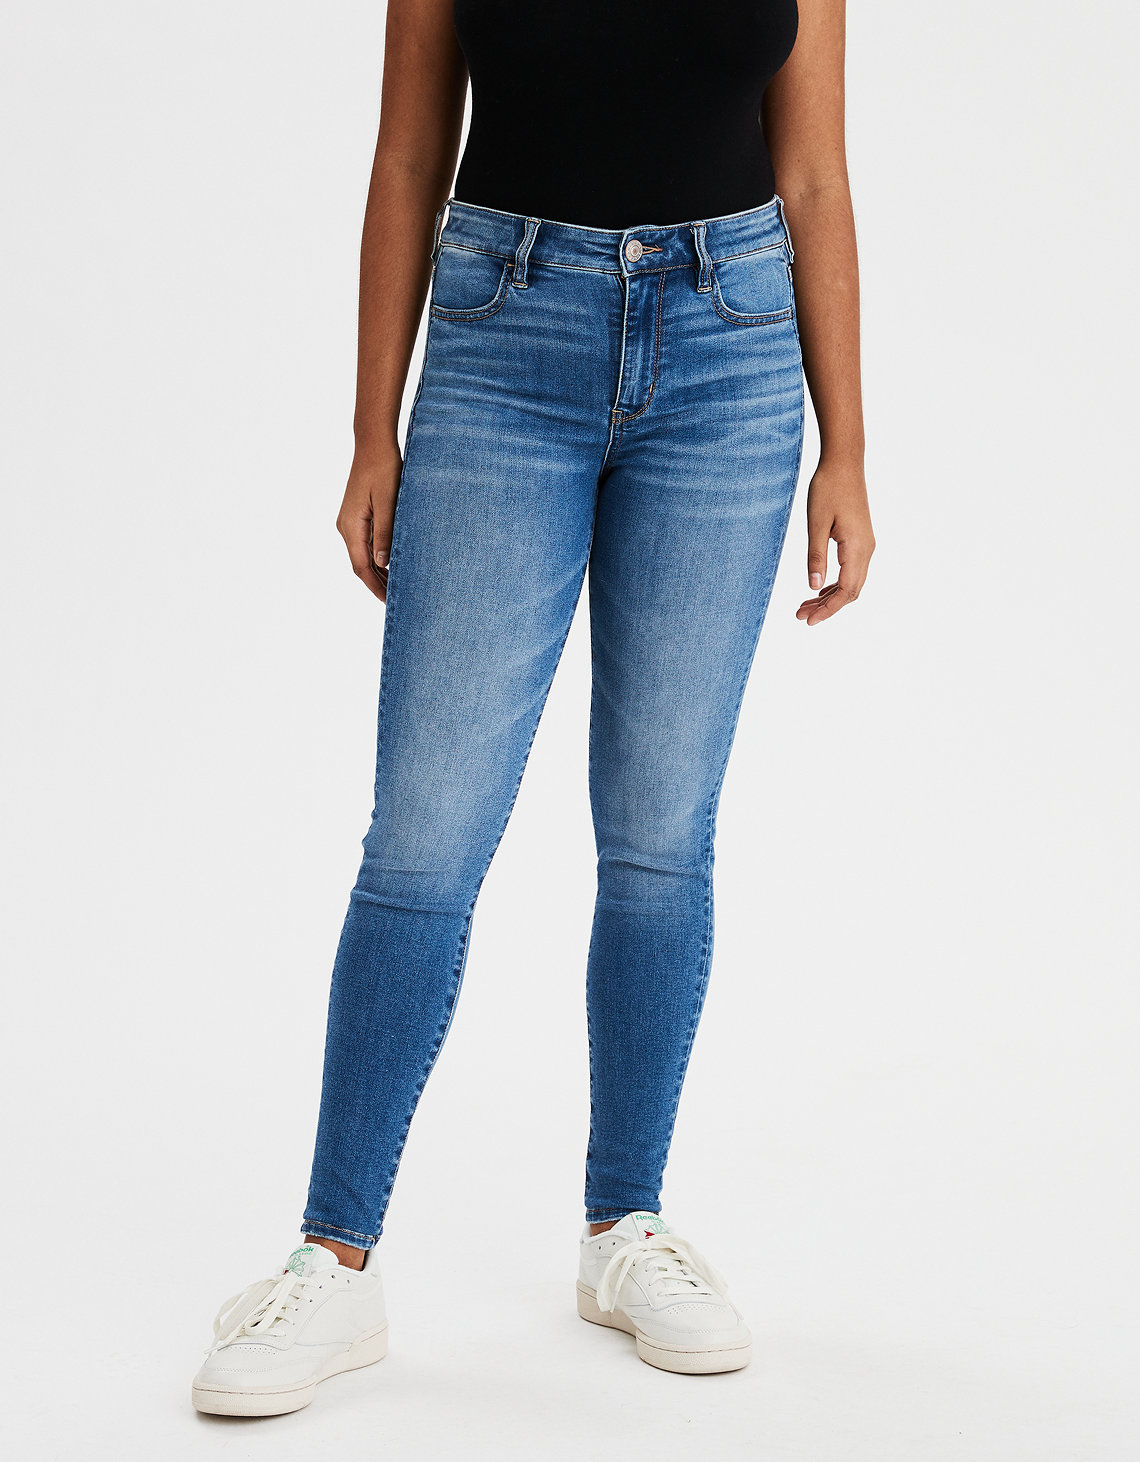 Jeans For Big Thighs Top 12 Brands In 2020